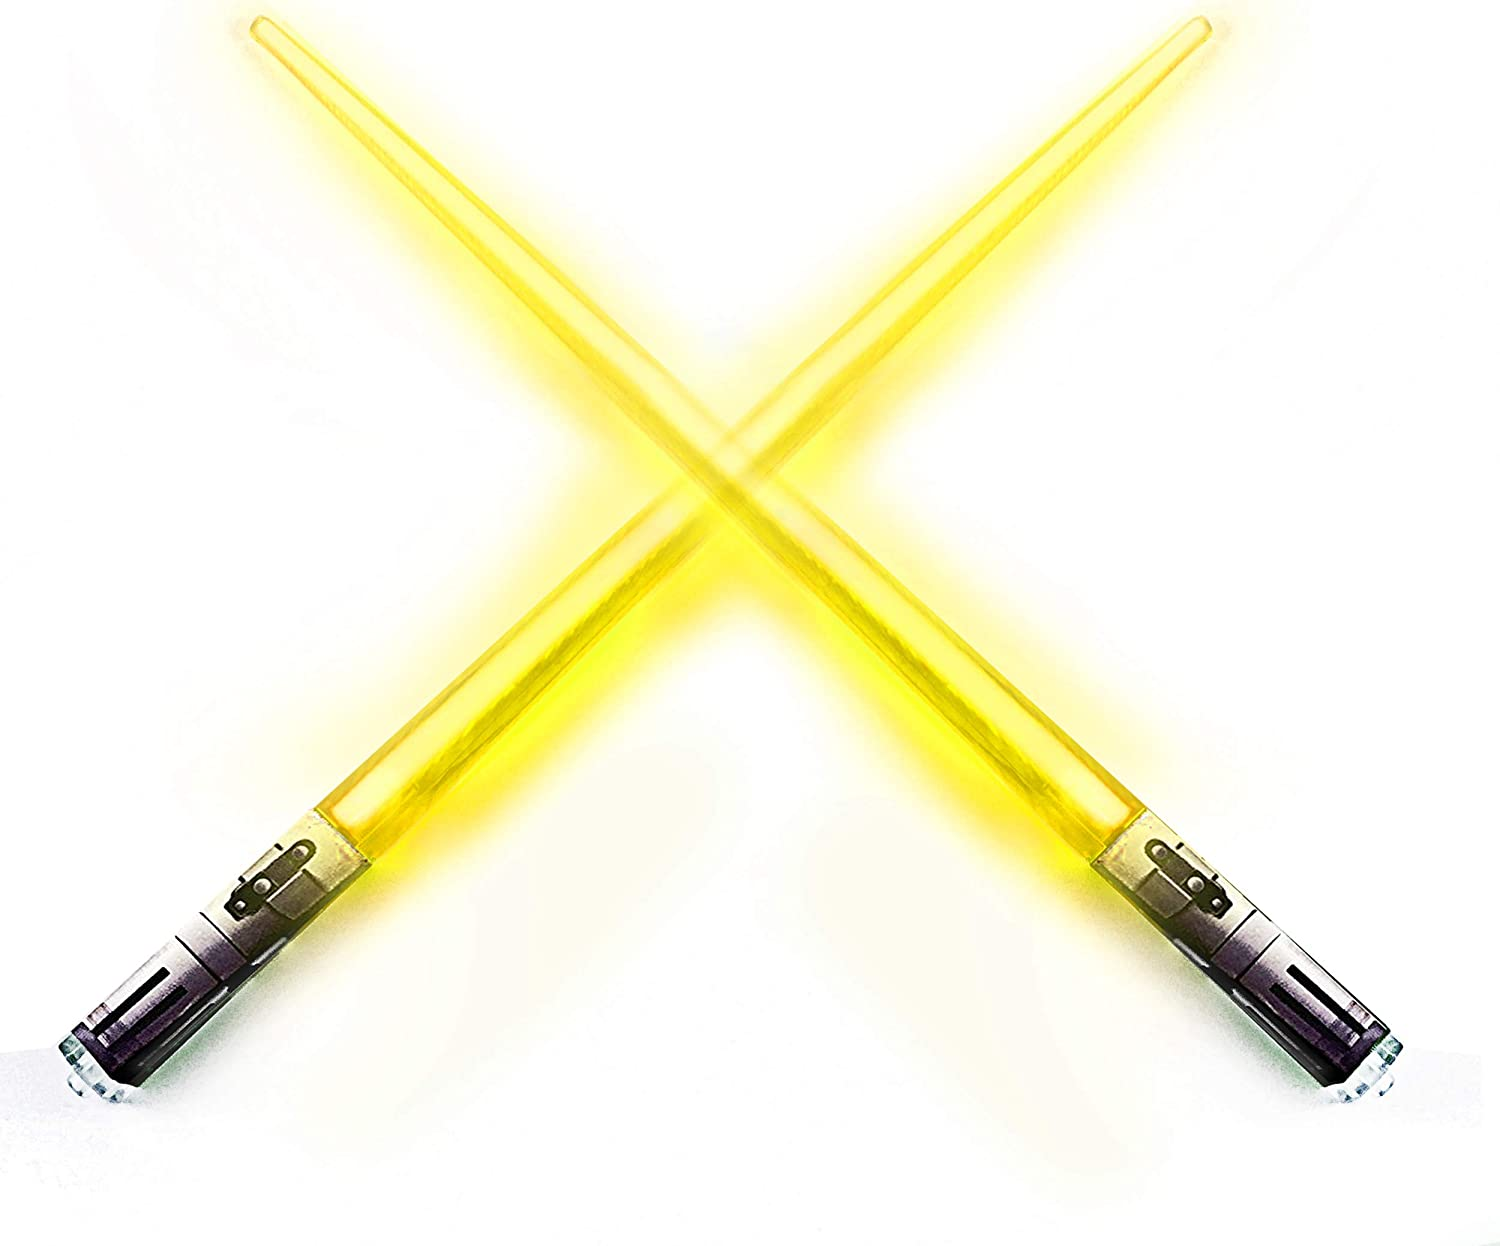 Chop Sabers Light Up LightSaber Chopsticks, 1 Pair, Yellow